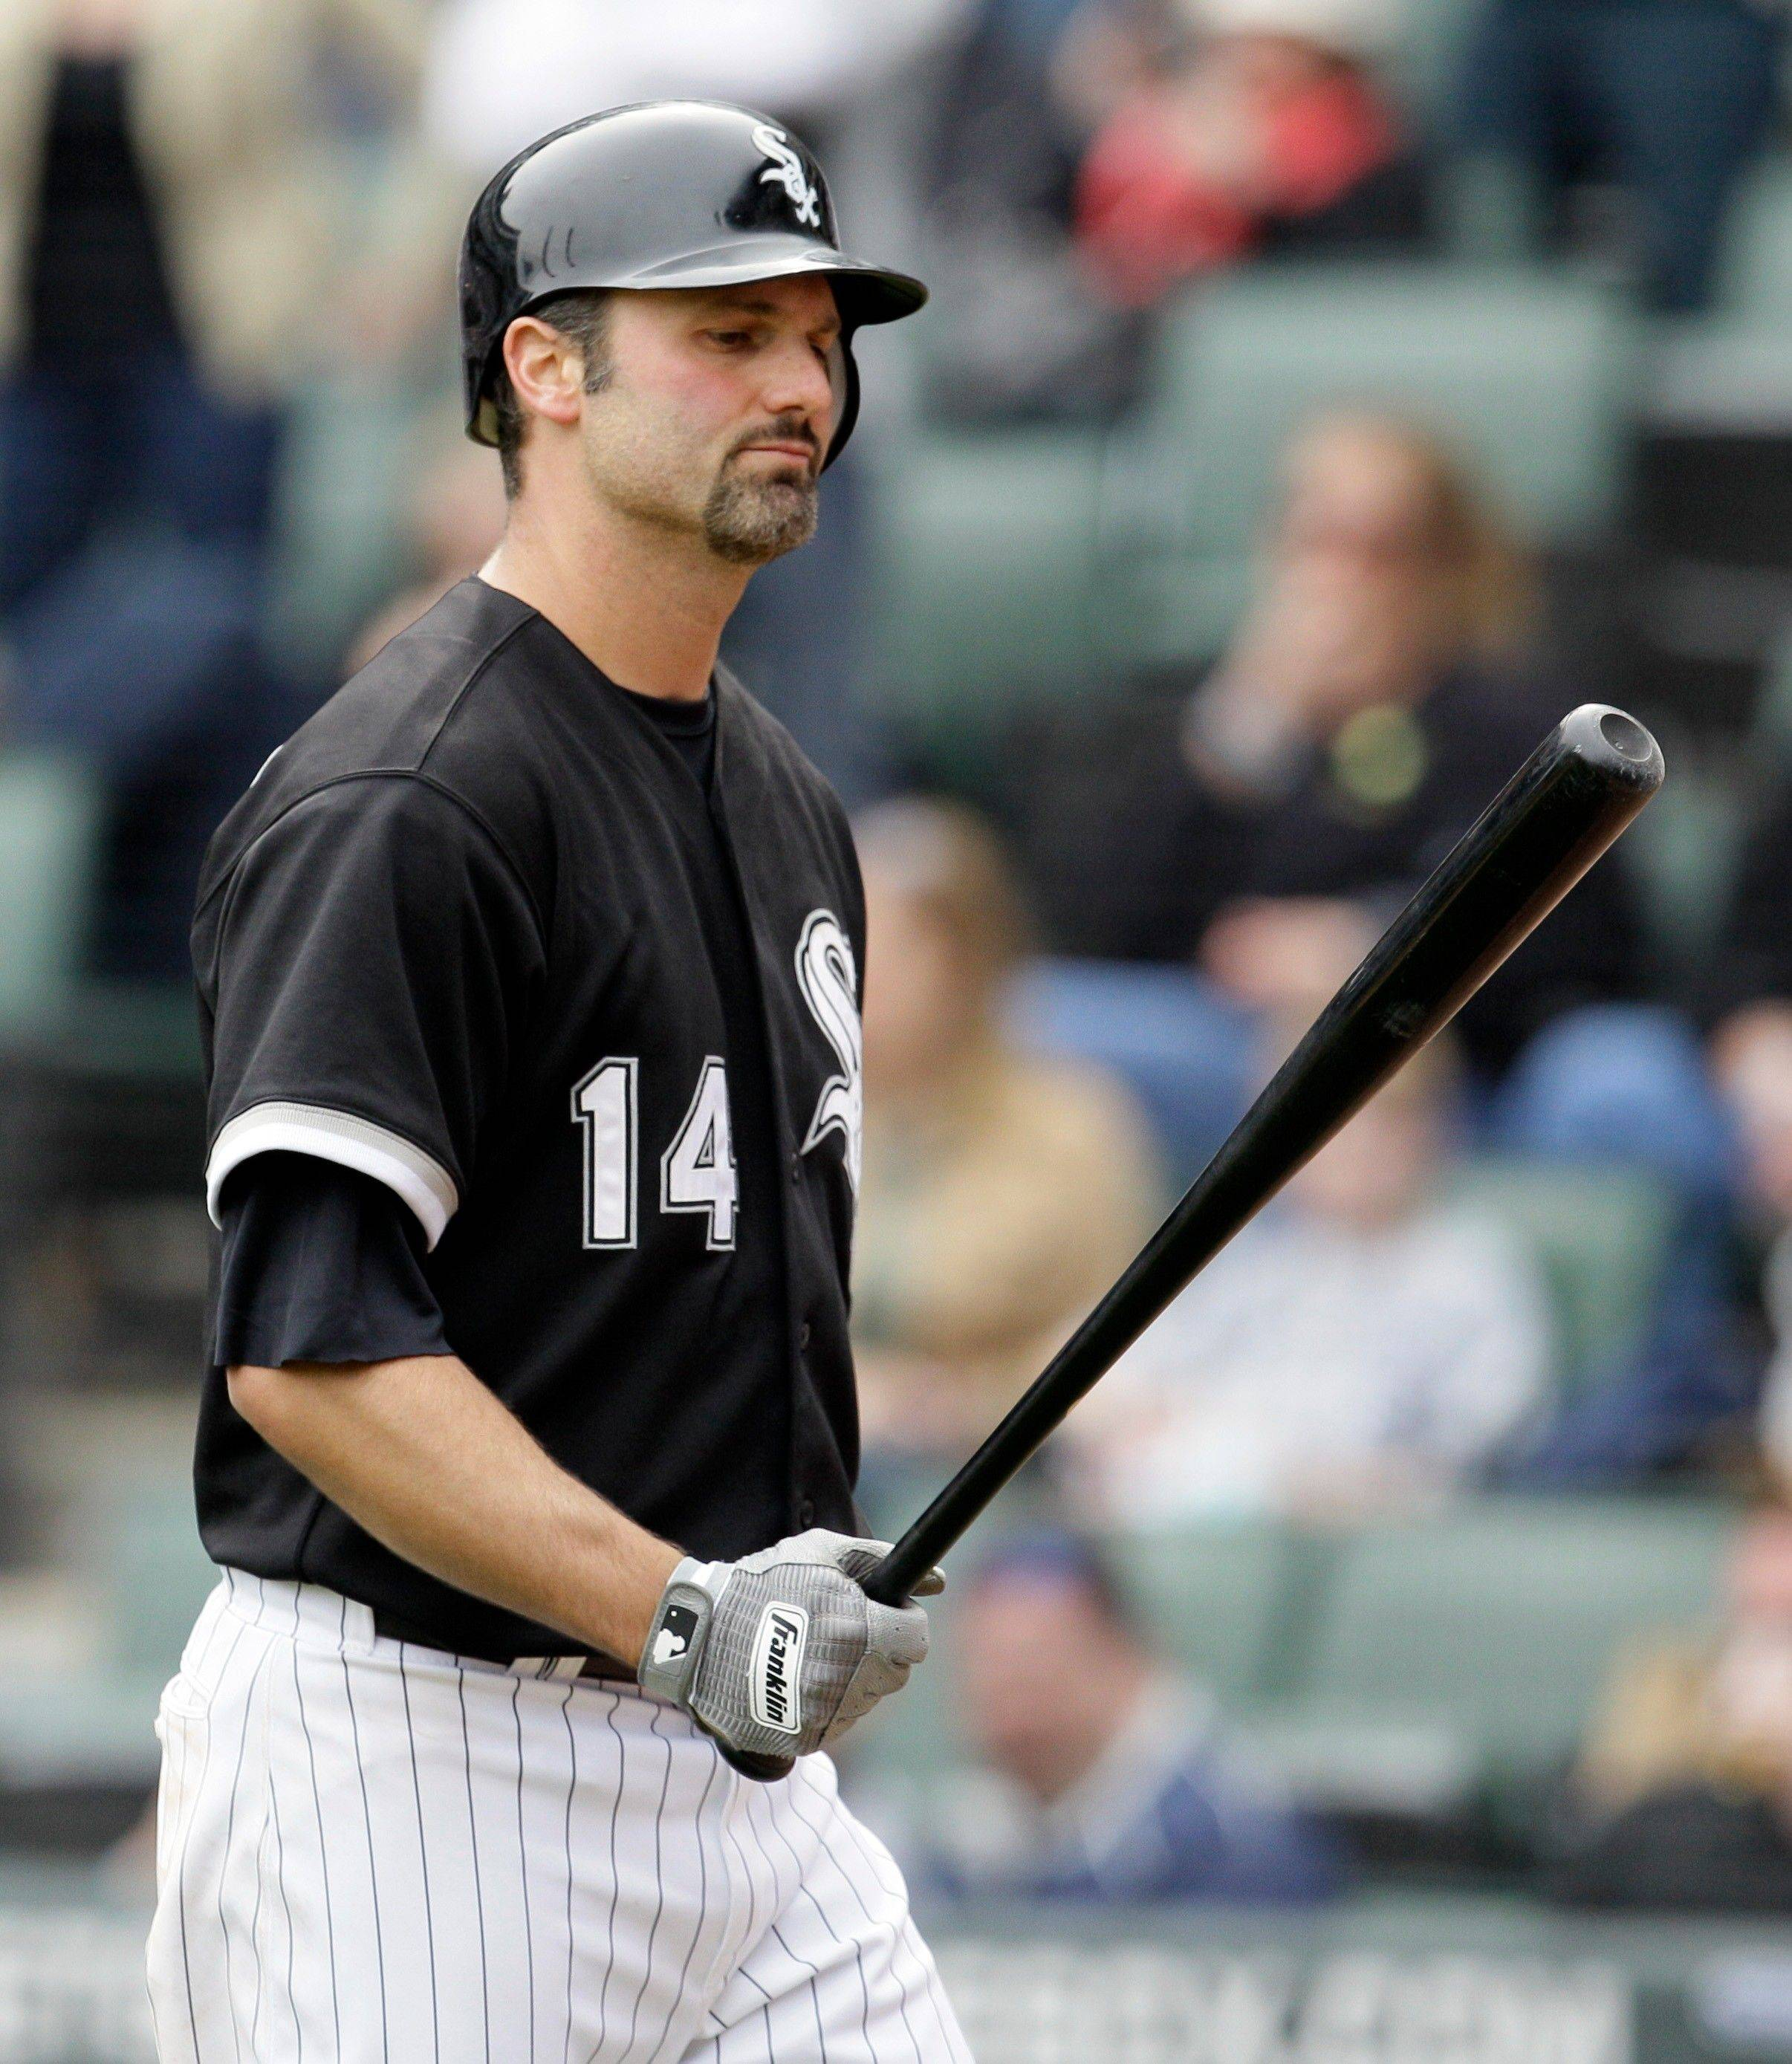 The White Sox' Paul Konerko is called out on strikes in the ninth inning Sunday.